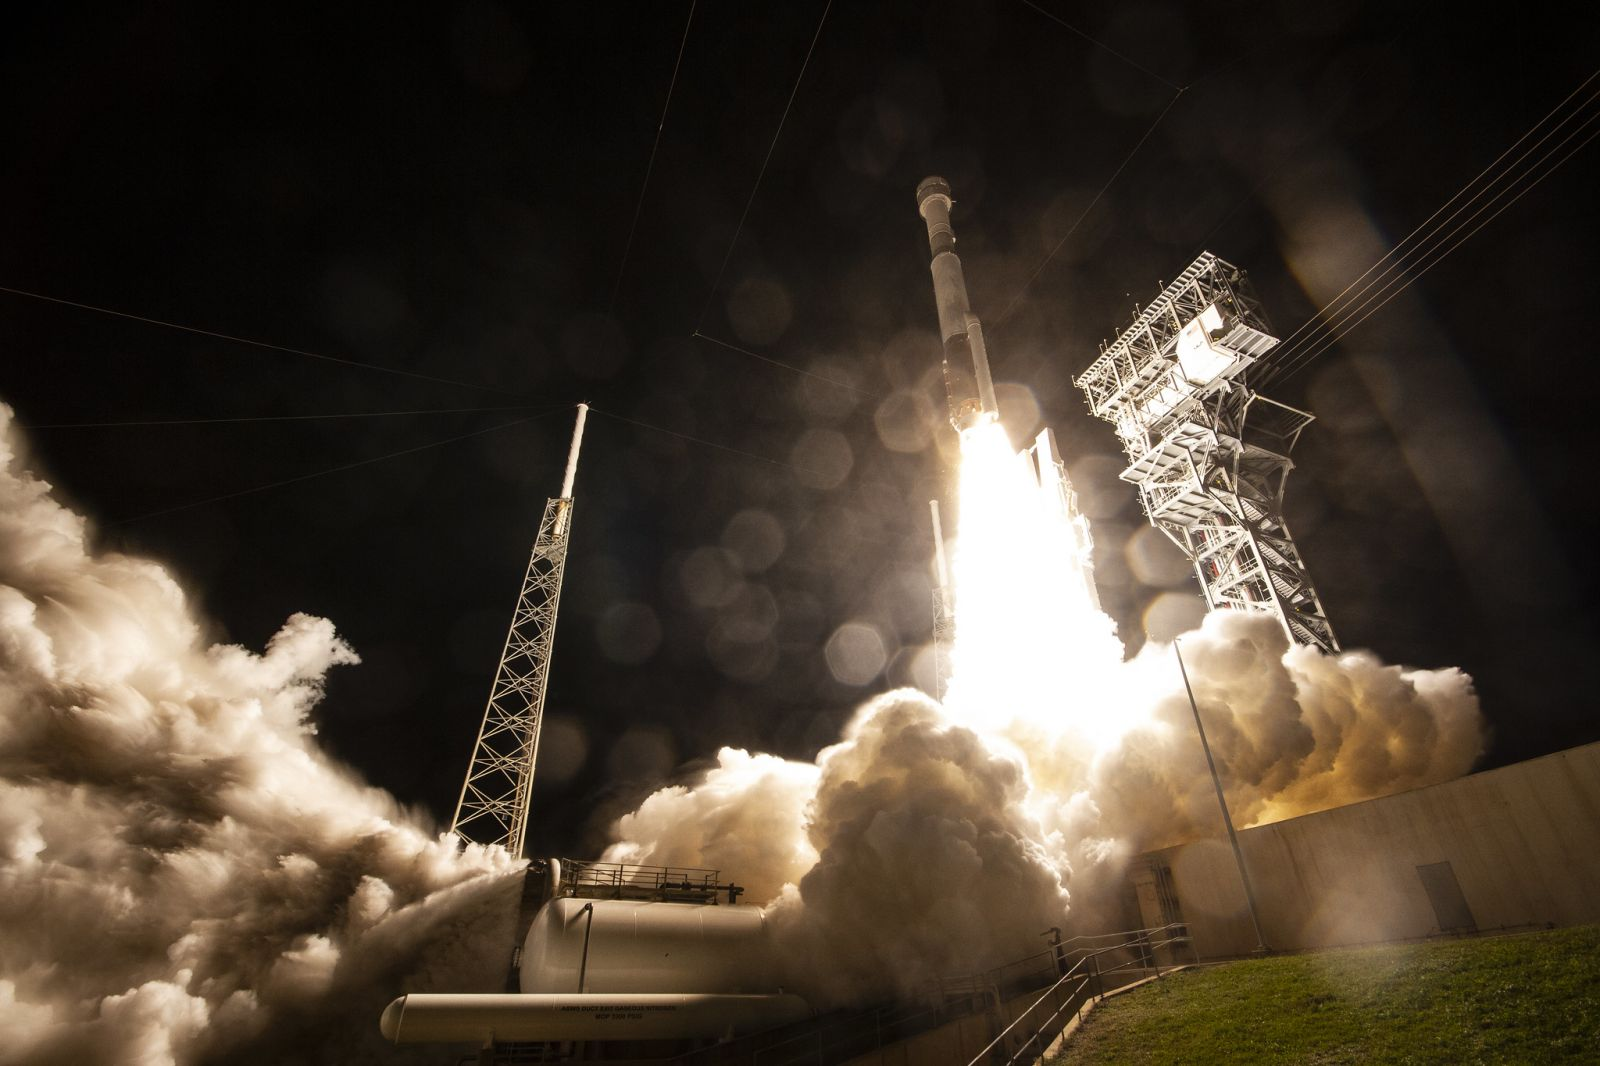 Gallery: ULA launches OFT-1 Starliner